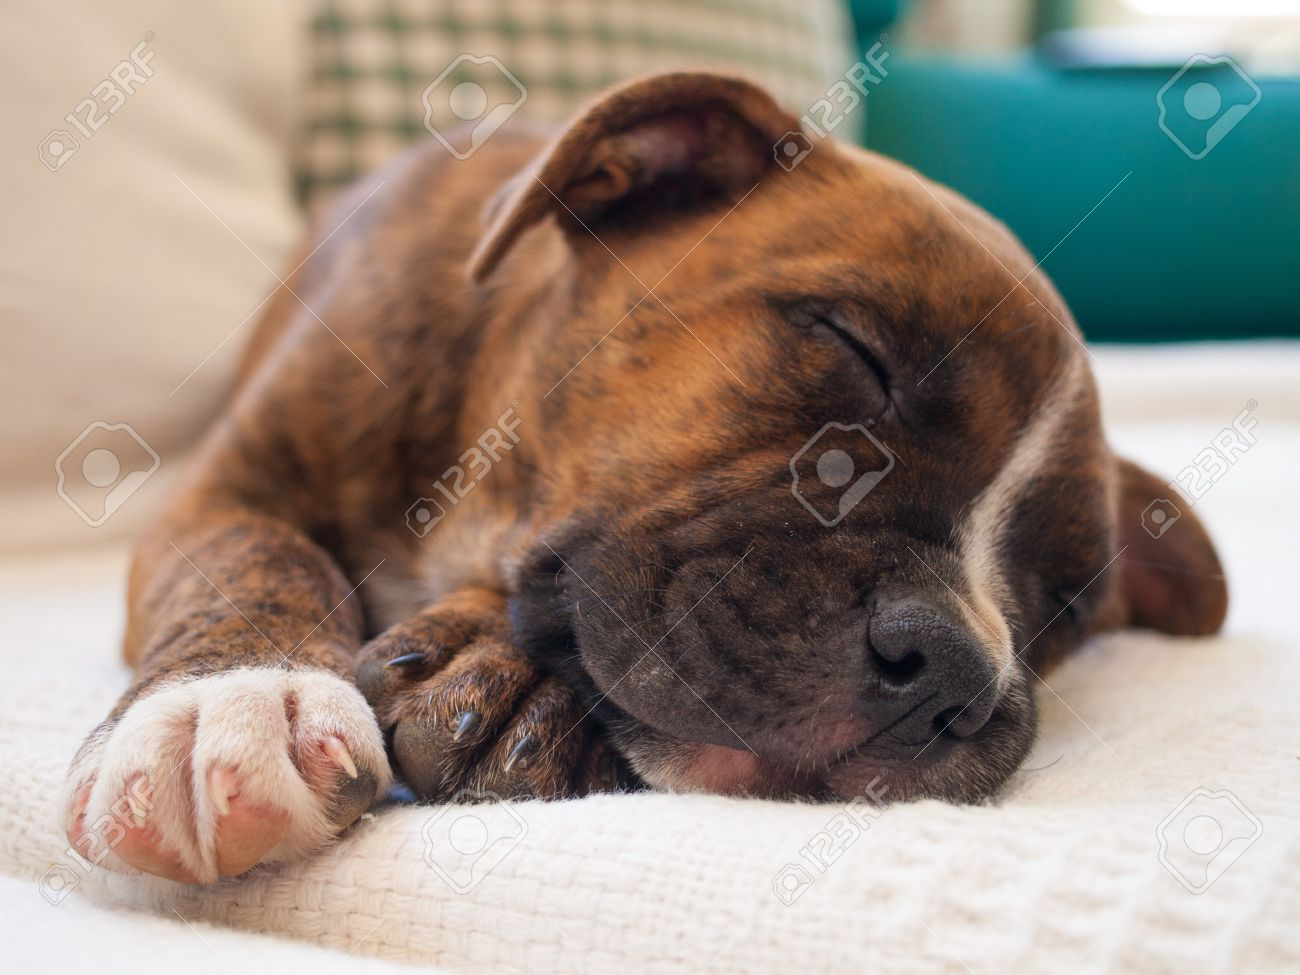 A Brindle Puppy Pitbull Sleeping Stock Photo Picture And Royalty